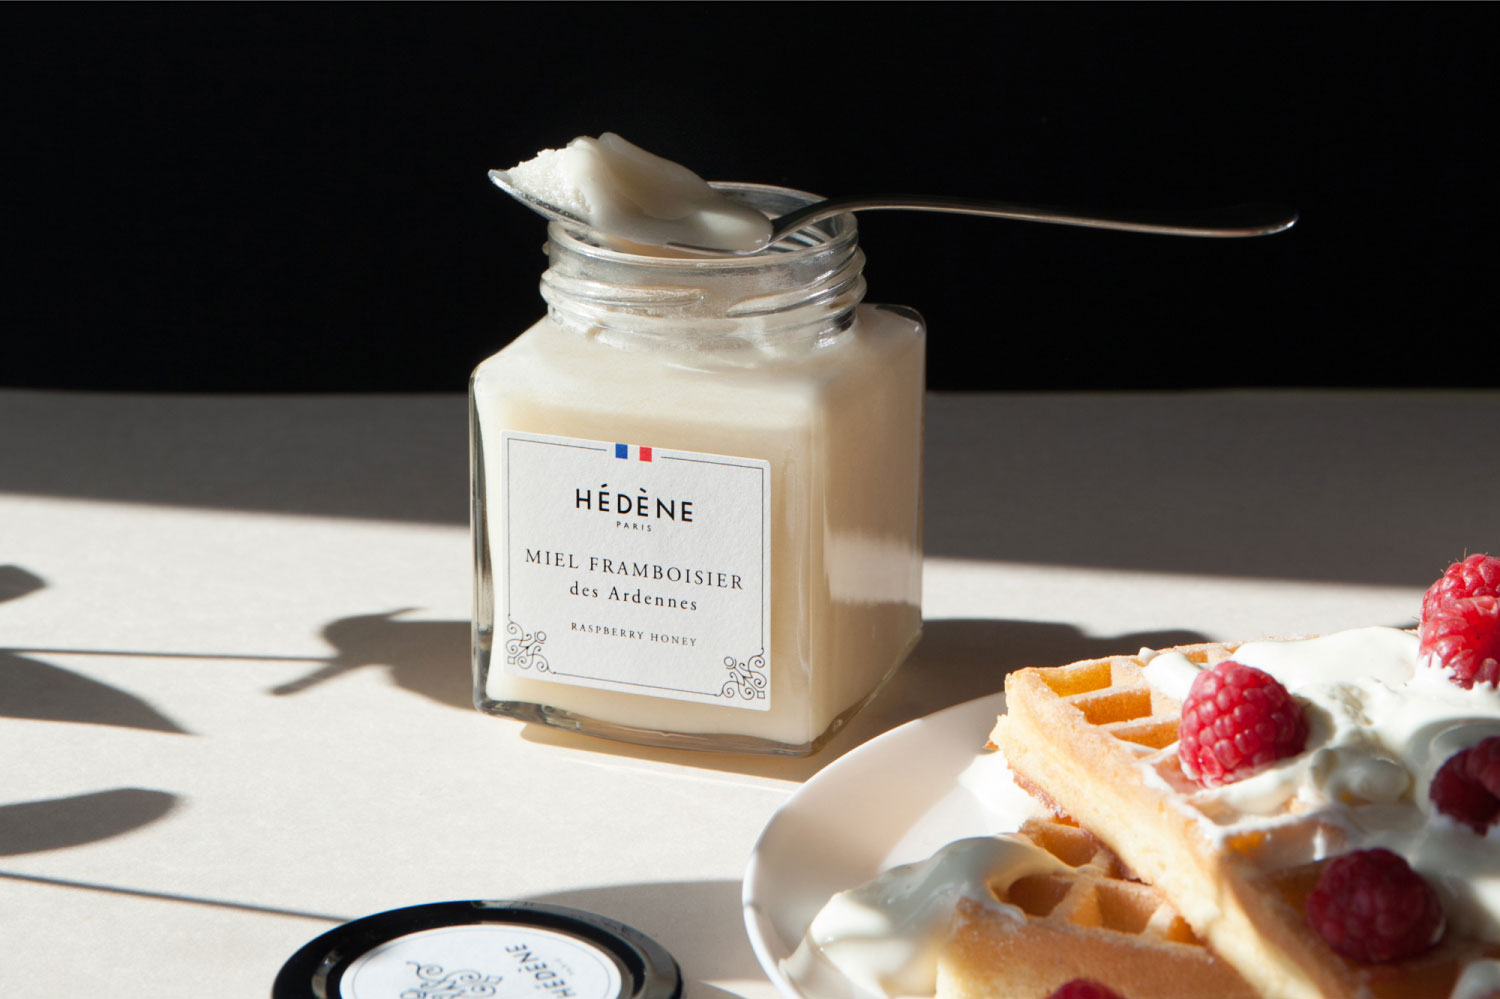 hedene-epicerie-fine-miel-luxe-france-framboisier-gaufres-cuillere